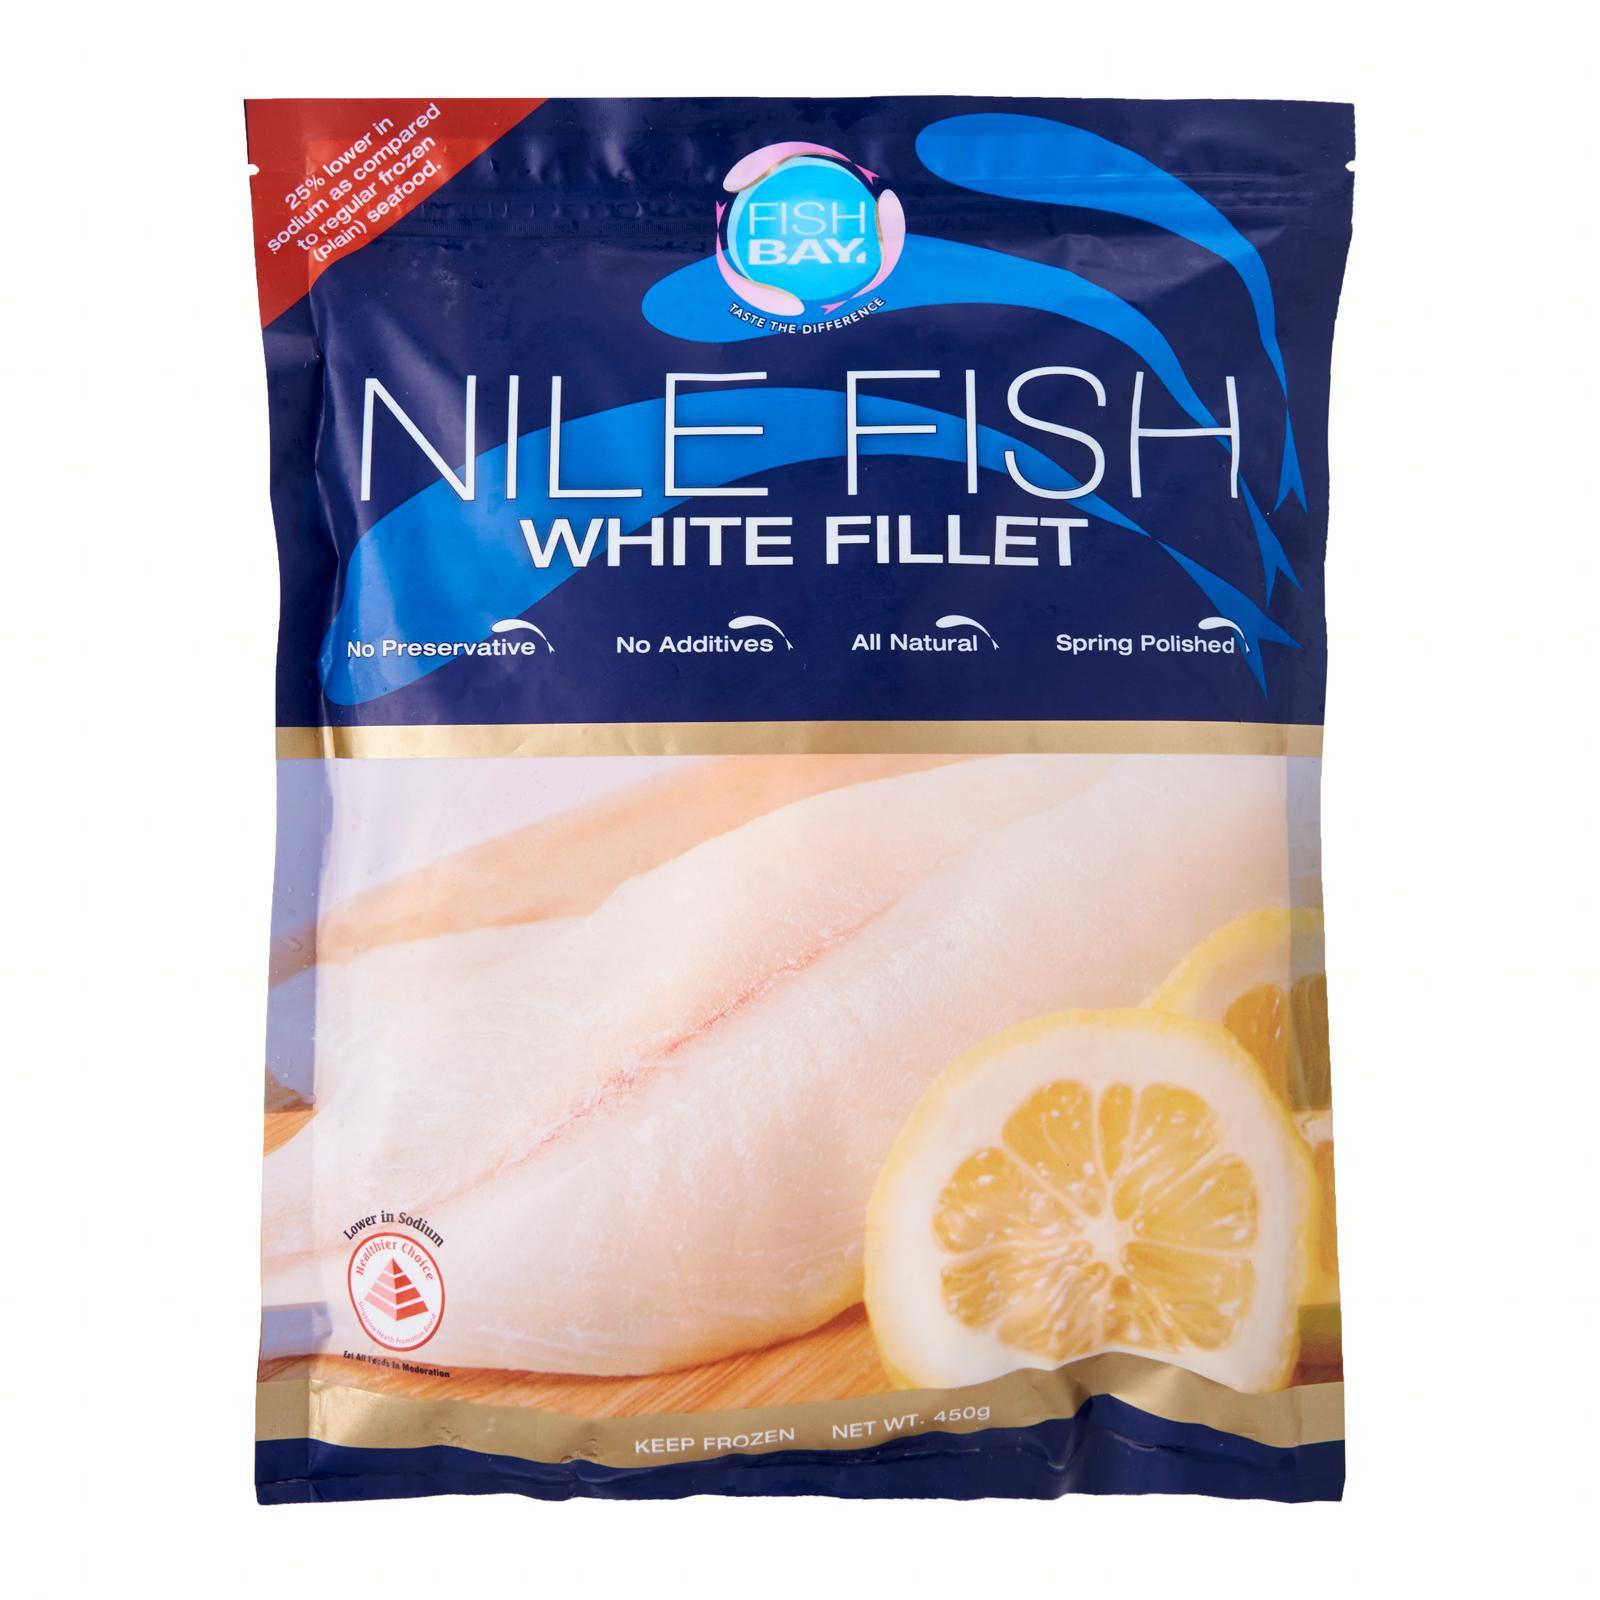 Fish Bay Nile Fish White Fillet - Frozen By Redmart.